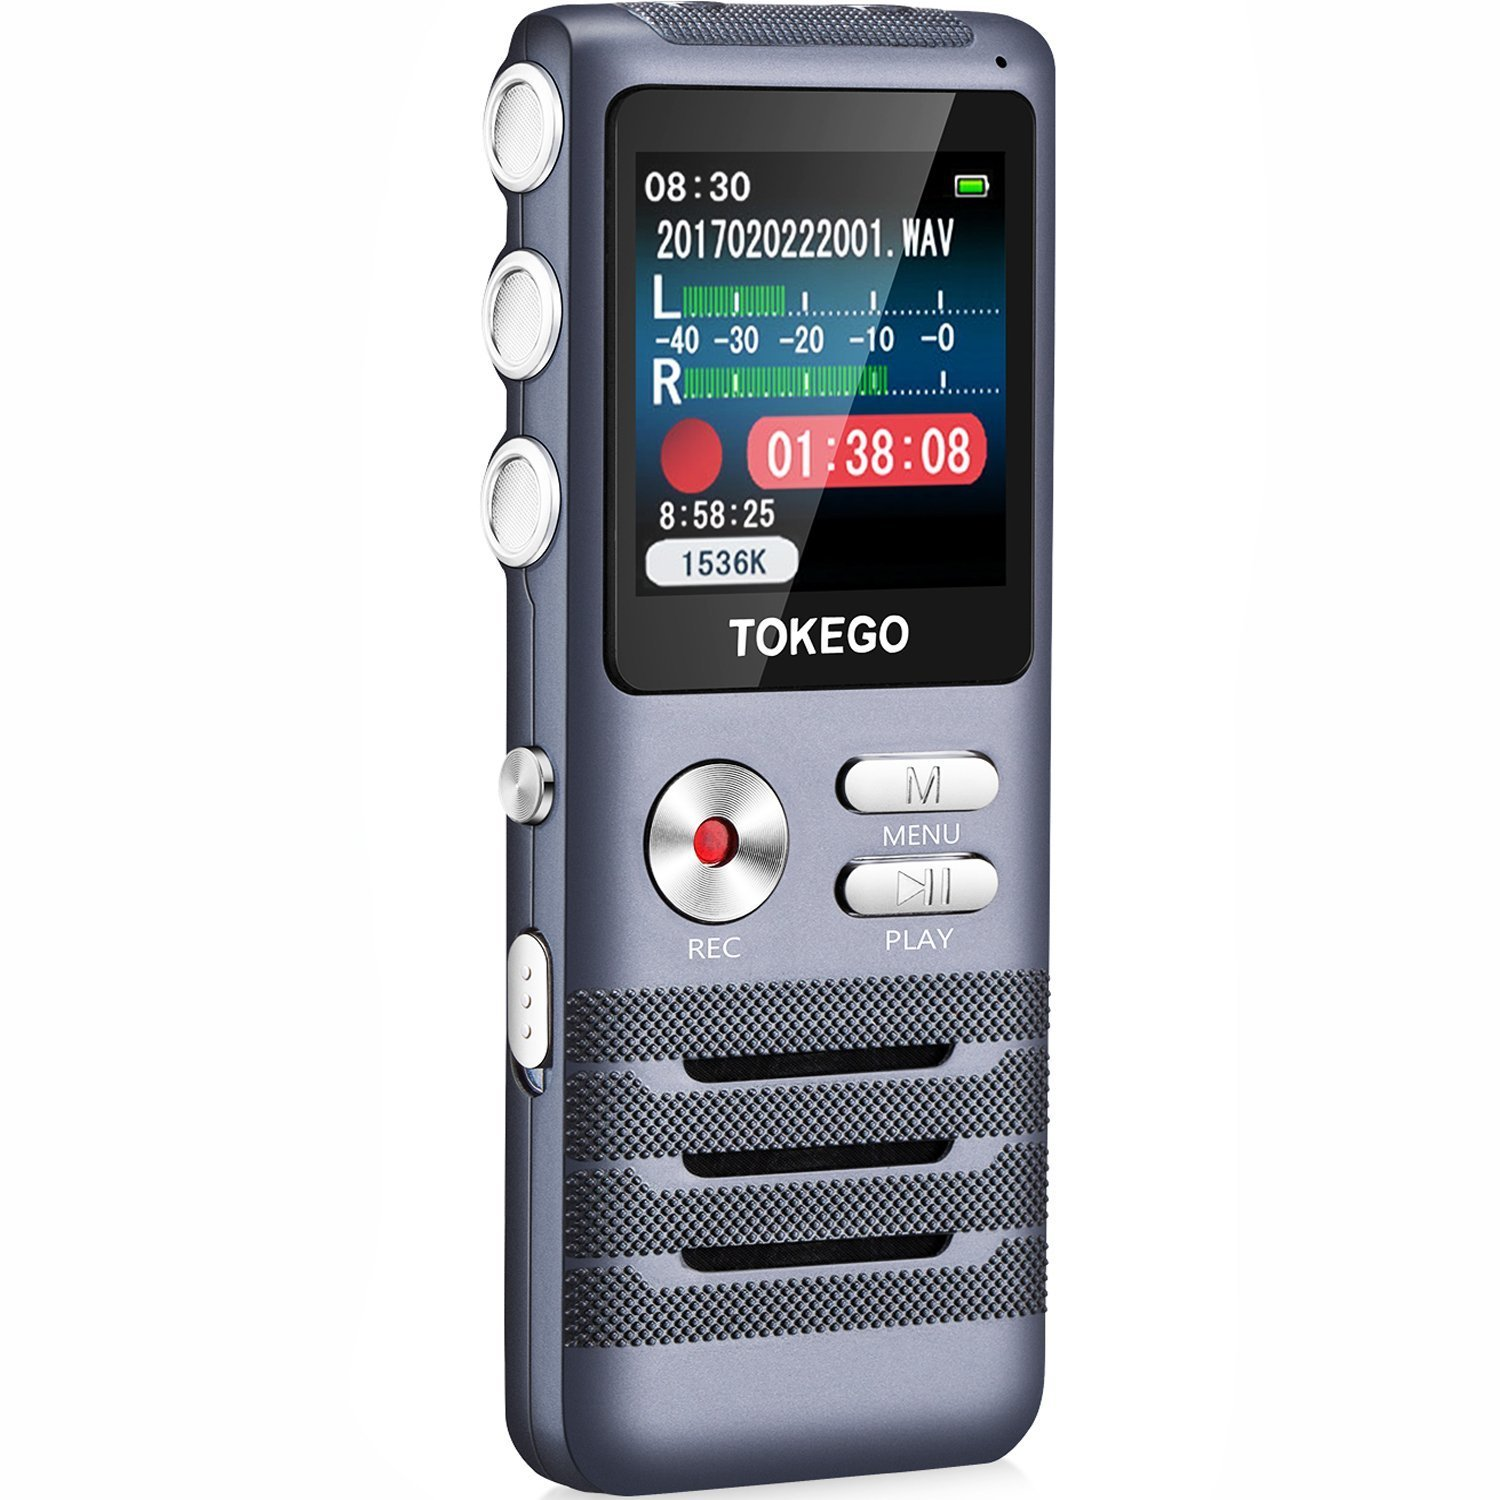 Digital Voice Recorder-Tokego 700 Hours Rechargeable 8GB Audio Sound Recorder Dictaphone, Noise Cancelling Voice Activated Recorder for Lectures, Meeting with MP3 Player, A-B Repeat, USB (Sliver)